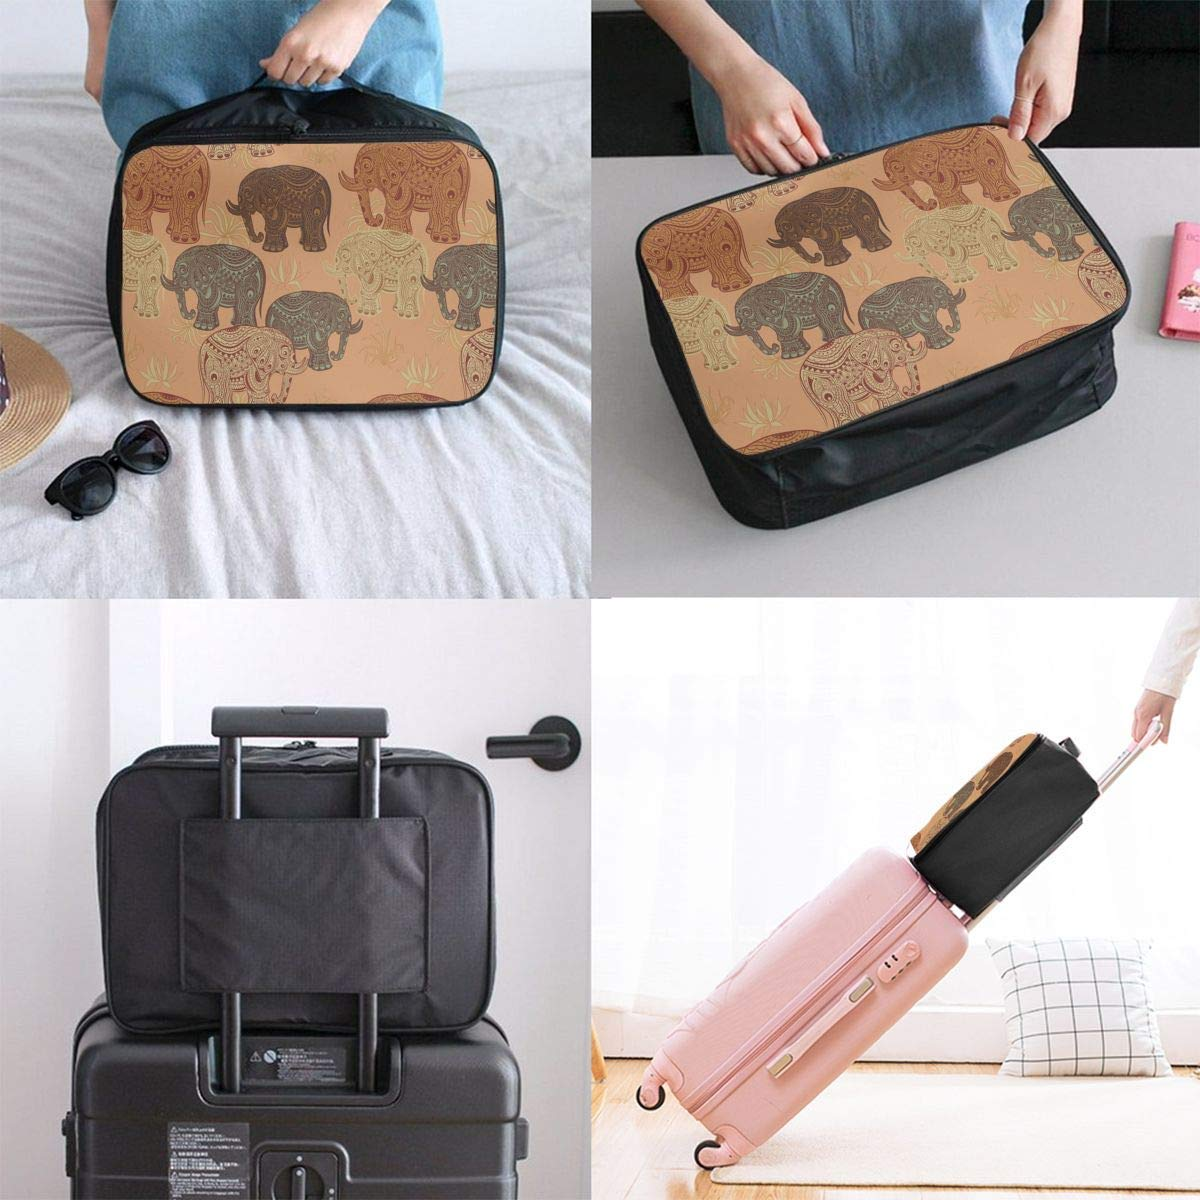 JTRVW Travel Luggage Trolley Bag Portable Lightweight Suitcases Duffle Tote Bag Handbag Vintage Lotus Ethnic Elephant Pattern